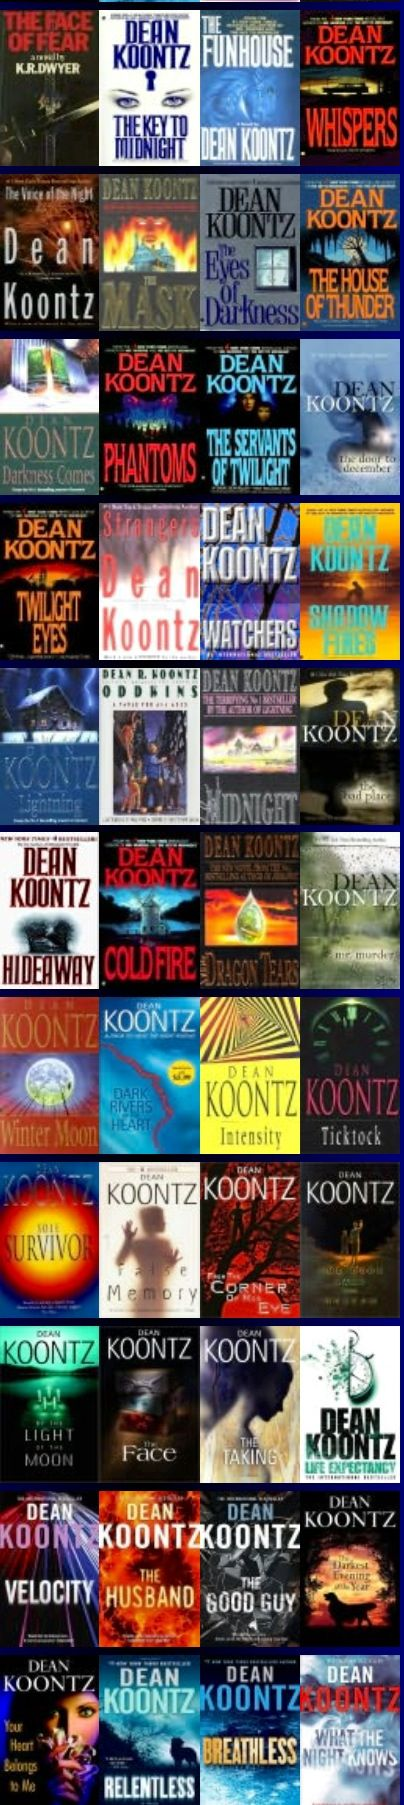 Author: Dean Koontz when i'd ran out od stephen king, richard laymon, this was the guy i went to next amaxing :)